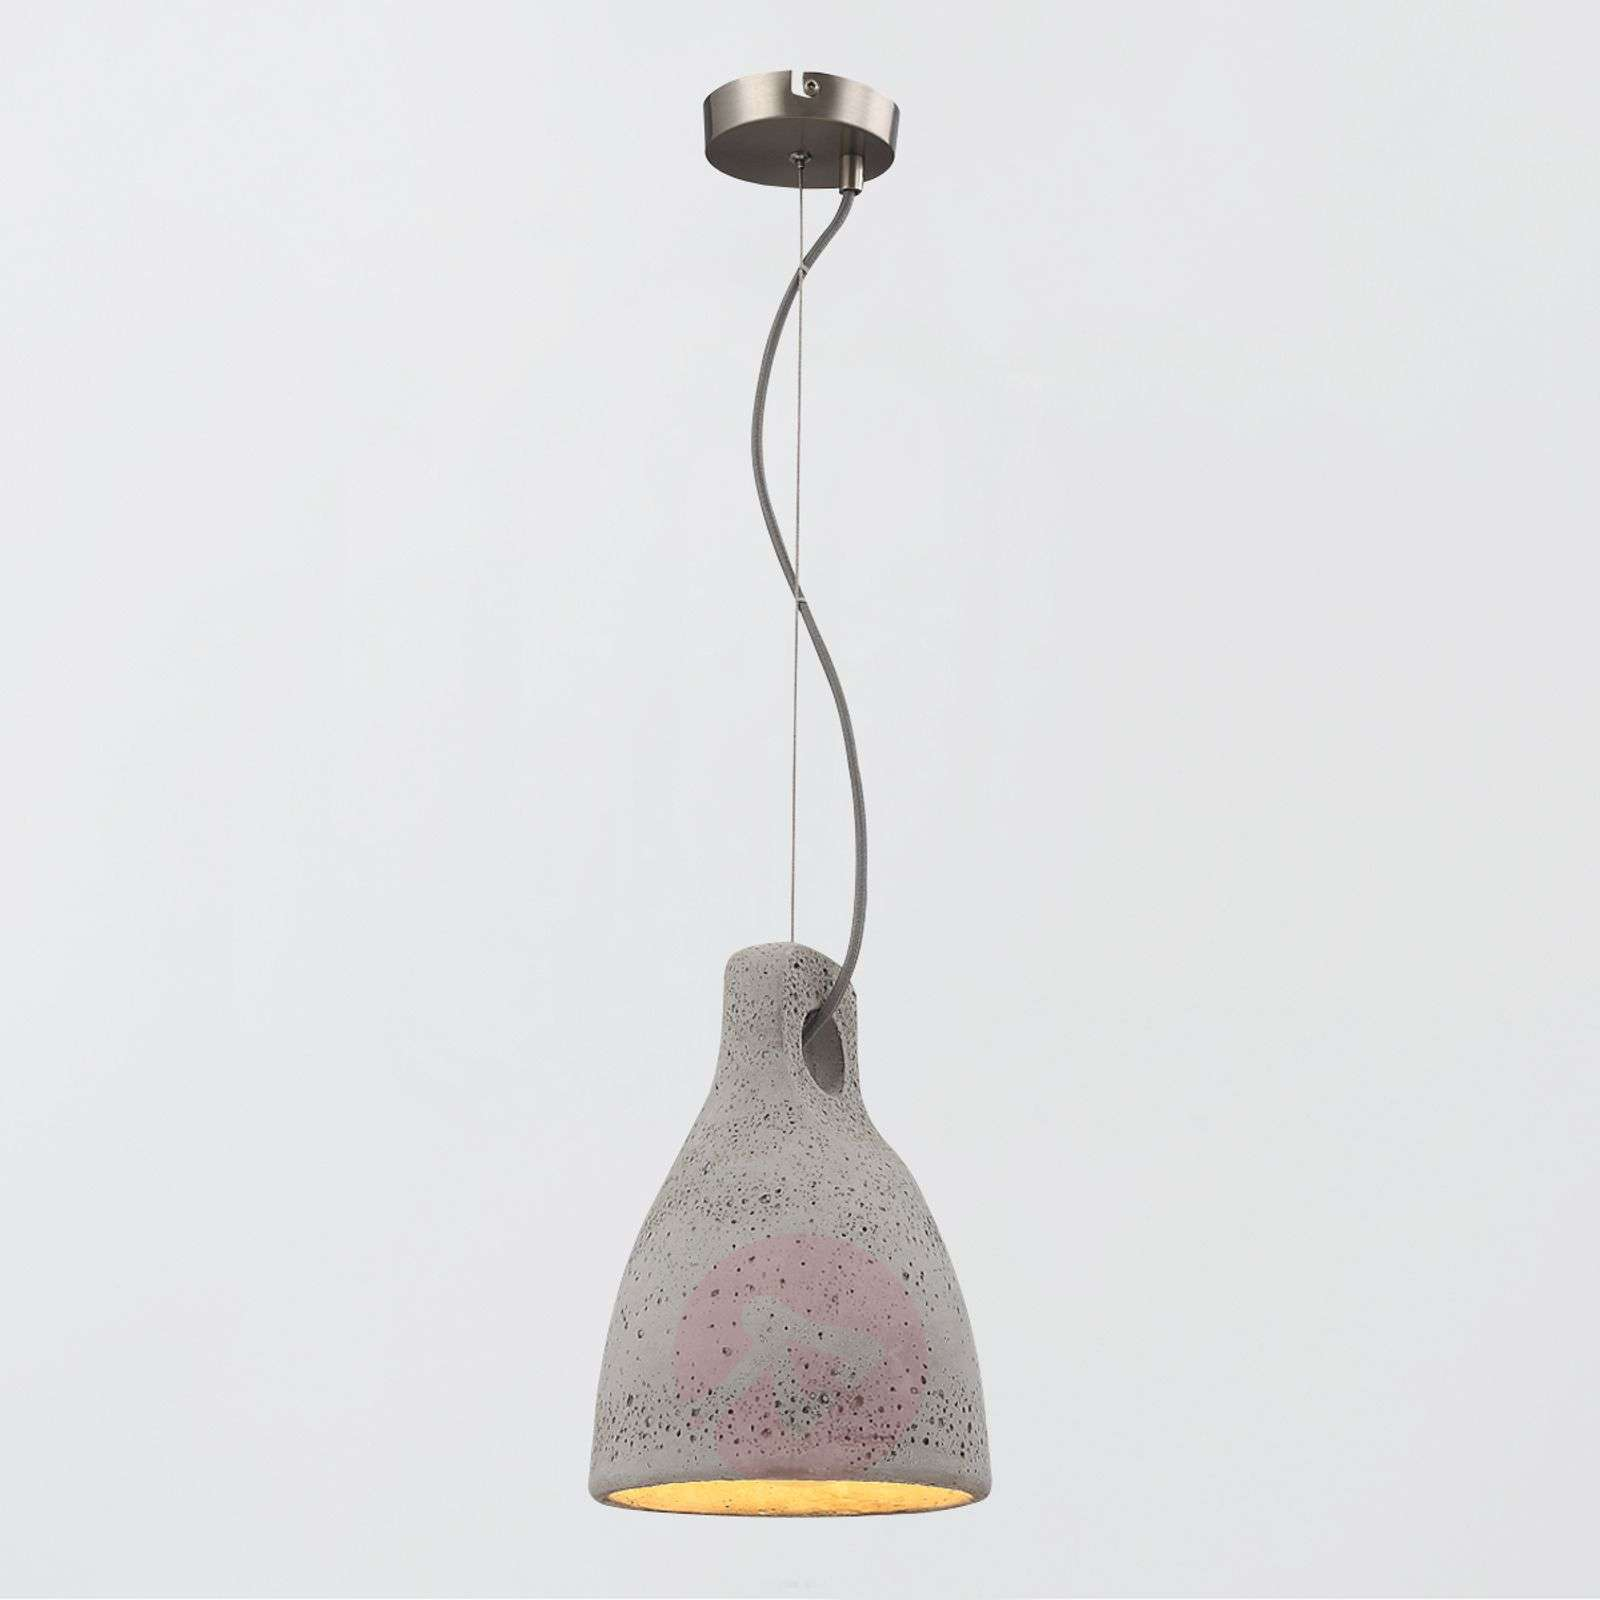 com lewis main john grey light concrete buyjohn online johnlewis at pendant pdp rsp emile